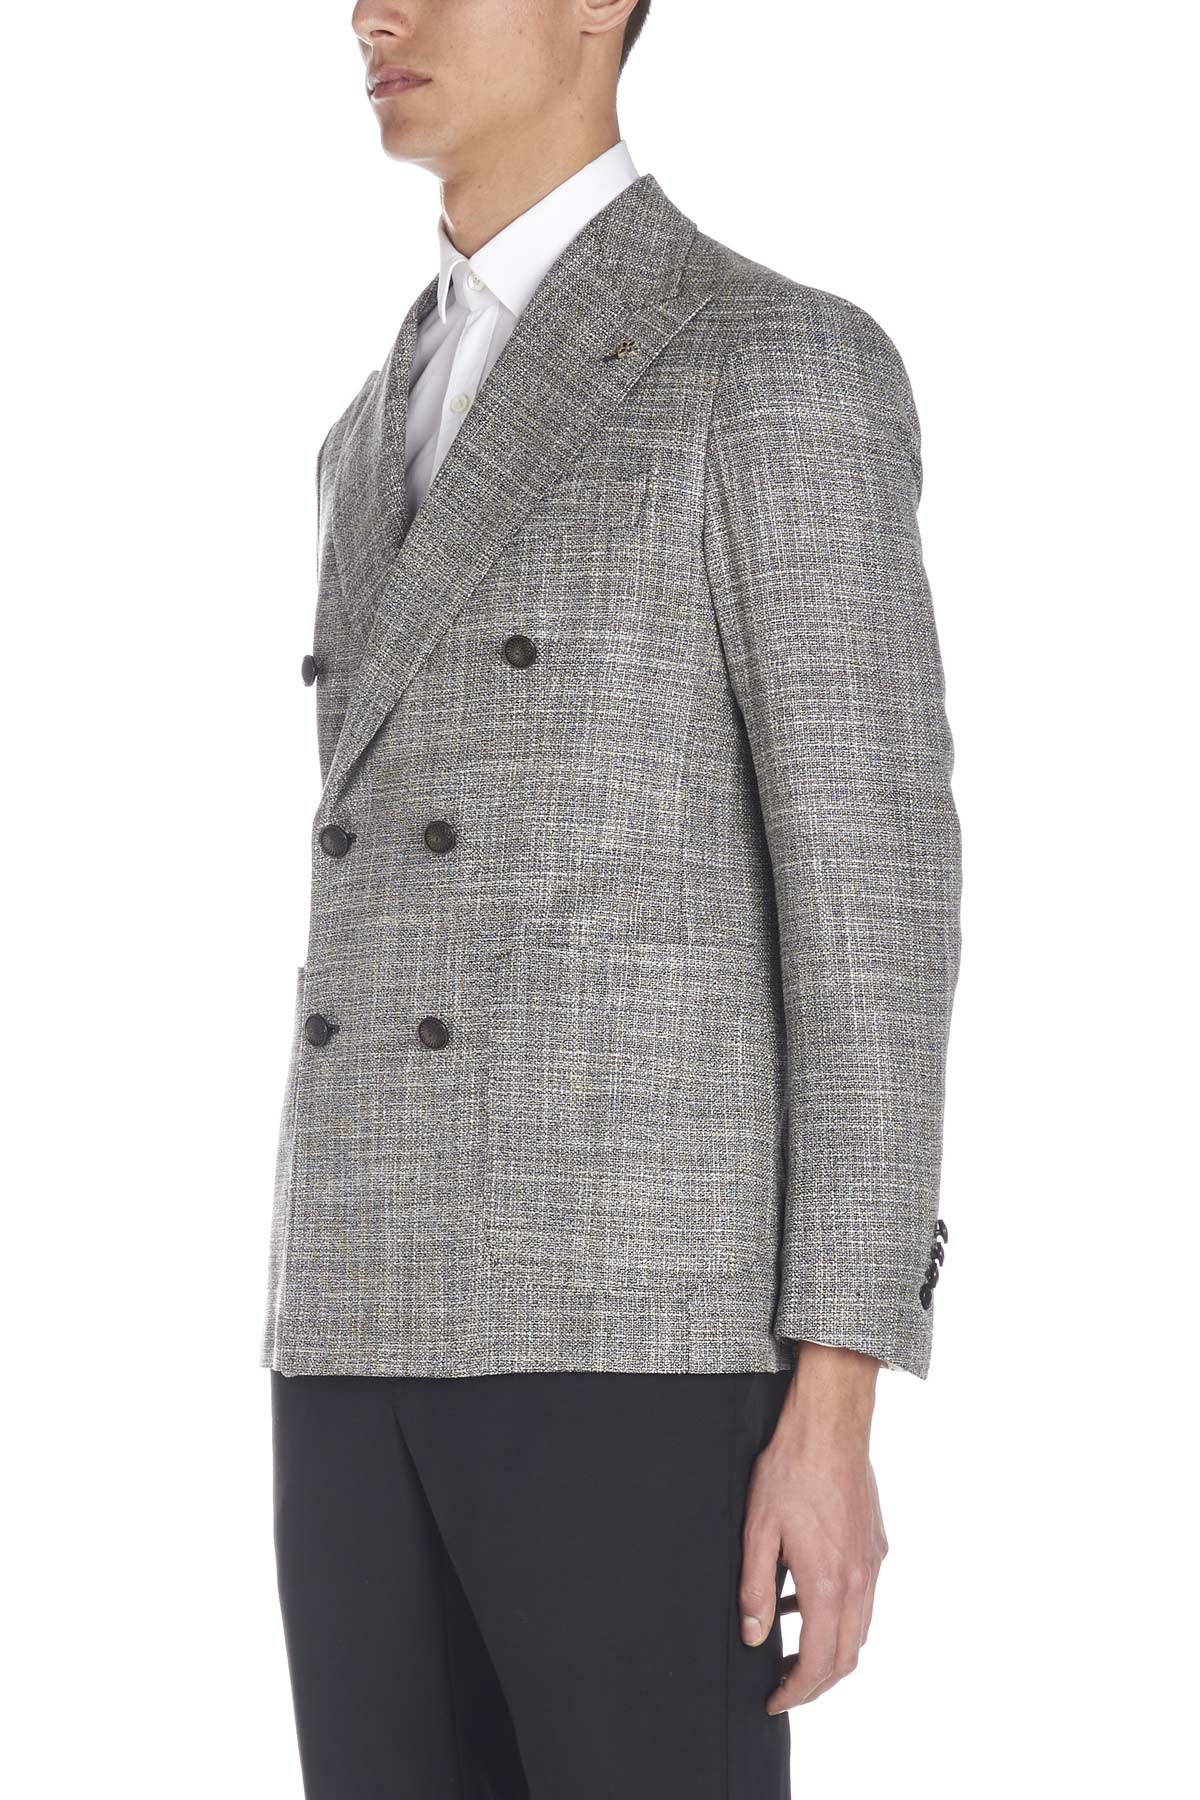 tagliatore  Monte carlo  jacket available on julian-fashion.com - 63175 fa2f0526fa9